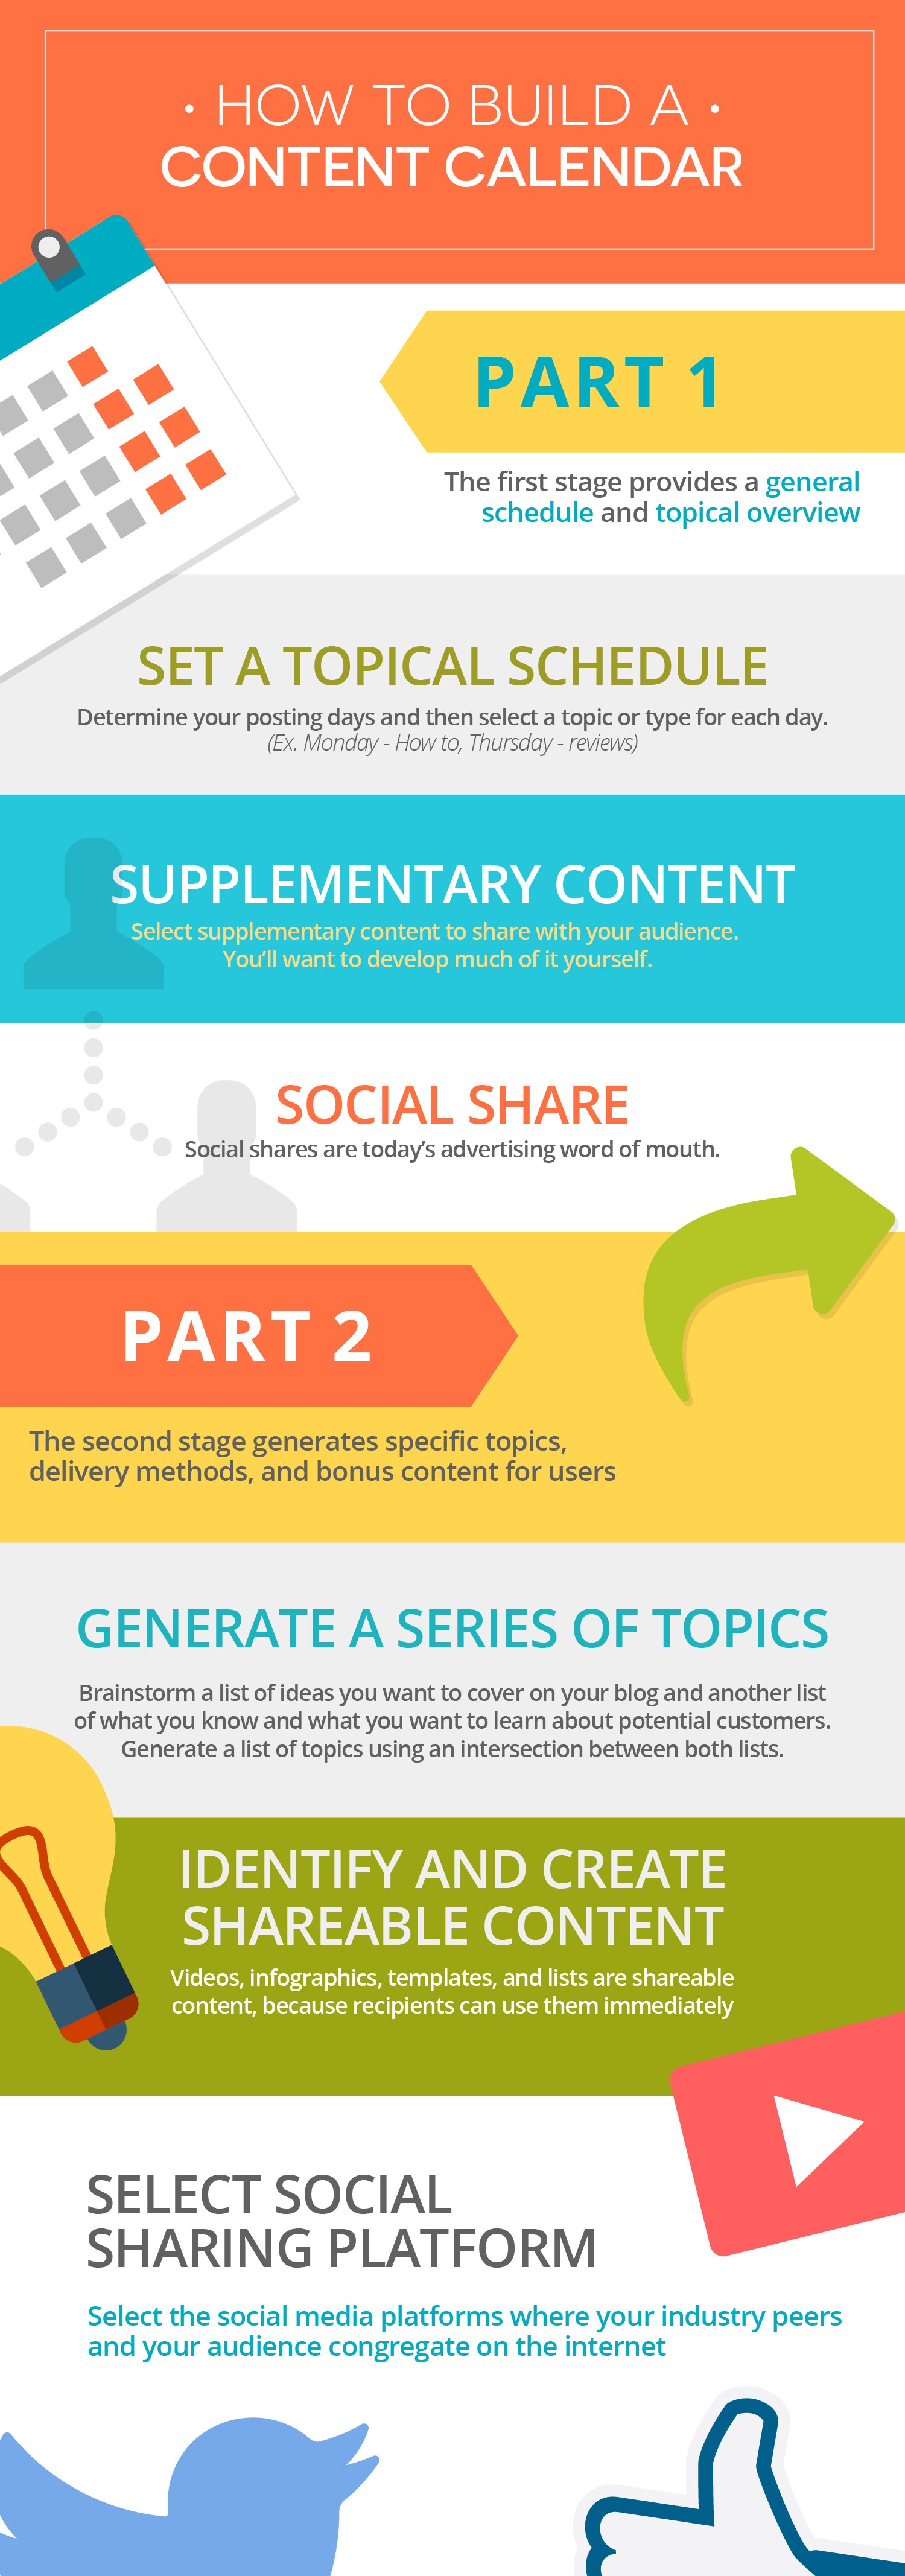 What Makes a Piece of Content Work for your Content Marketing?